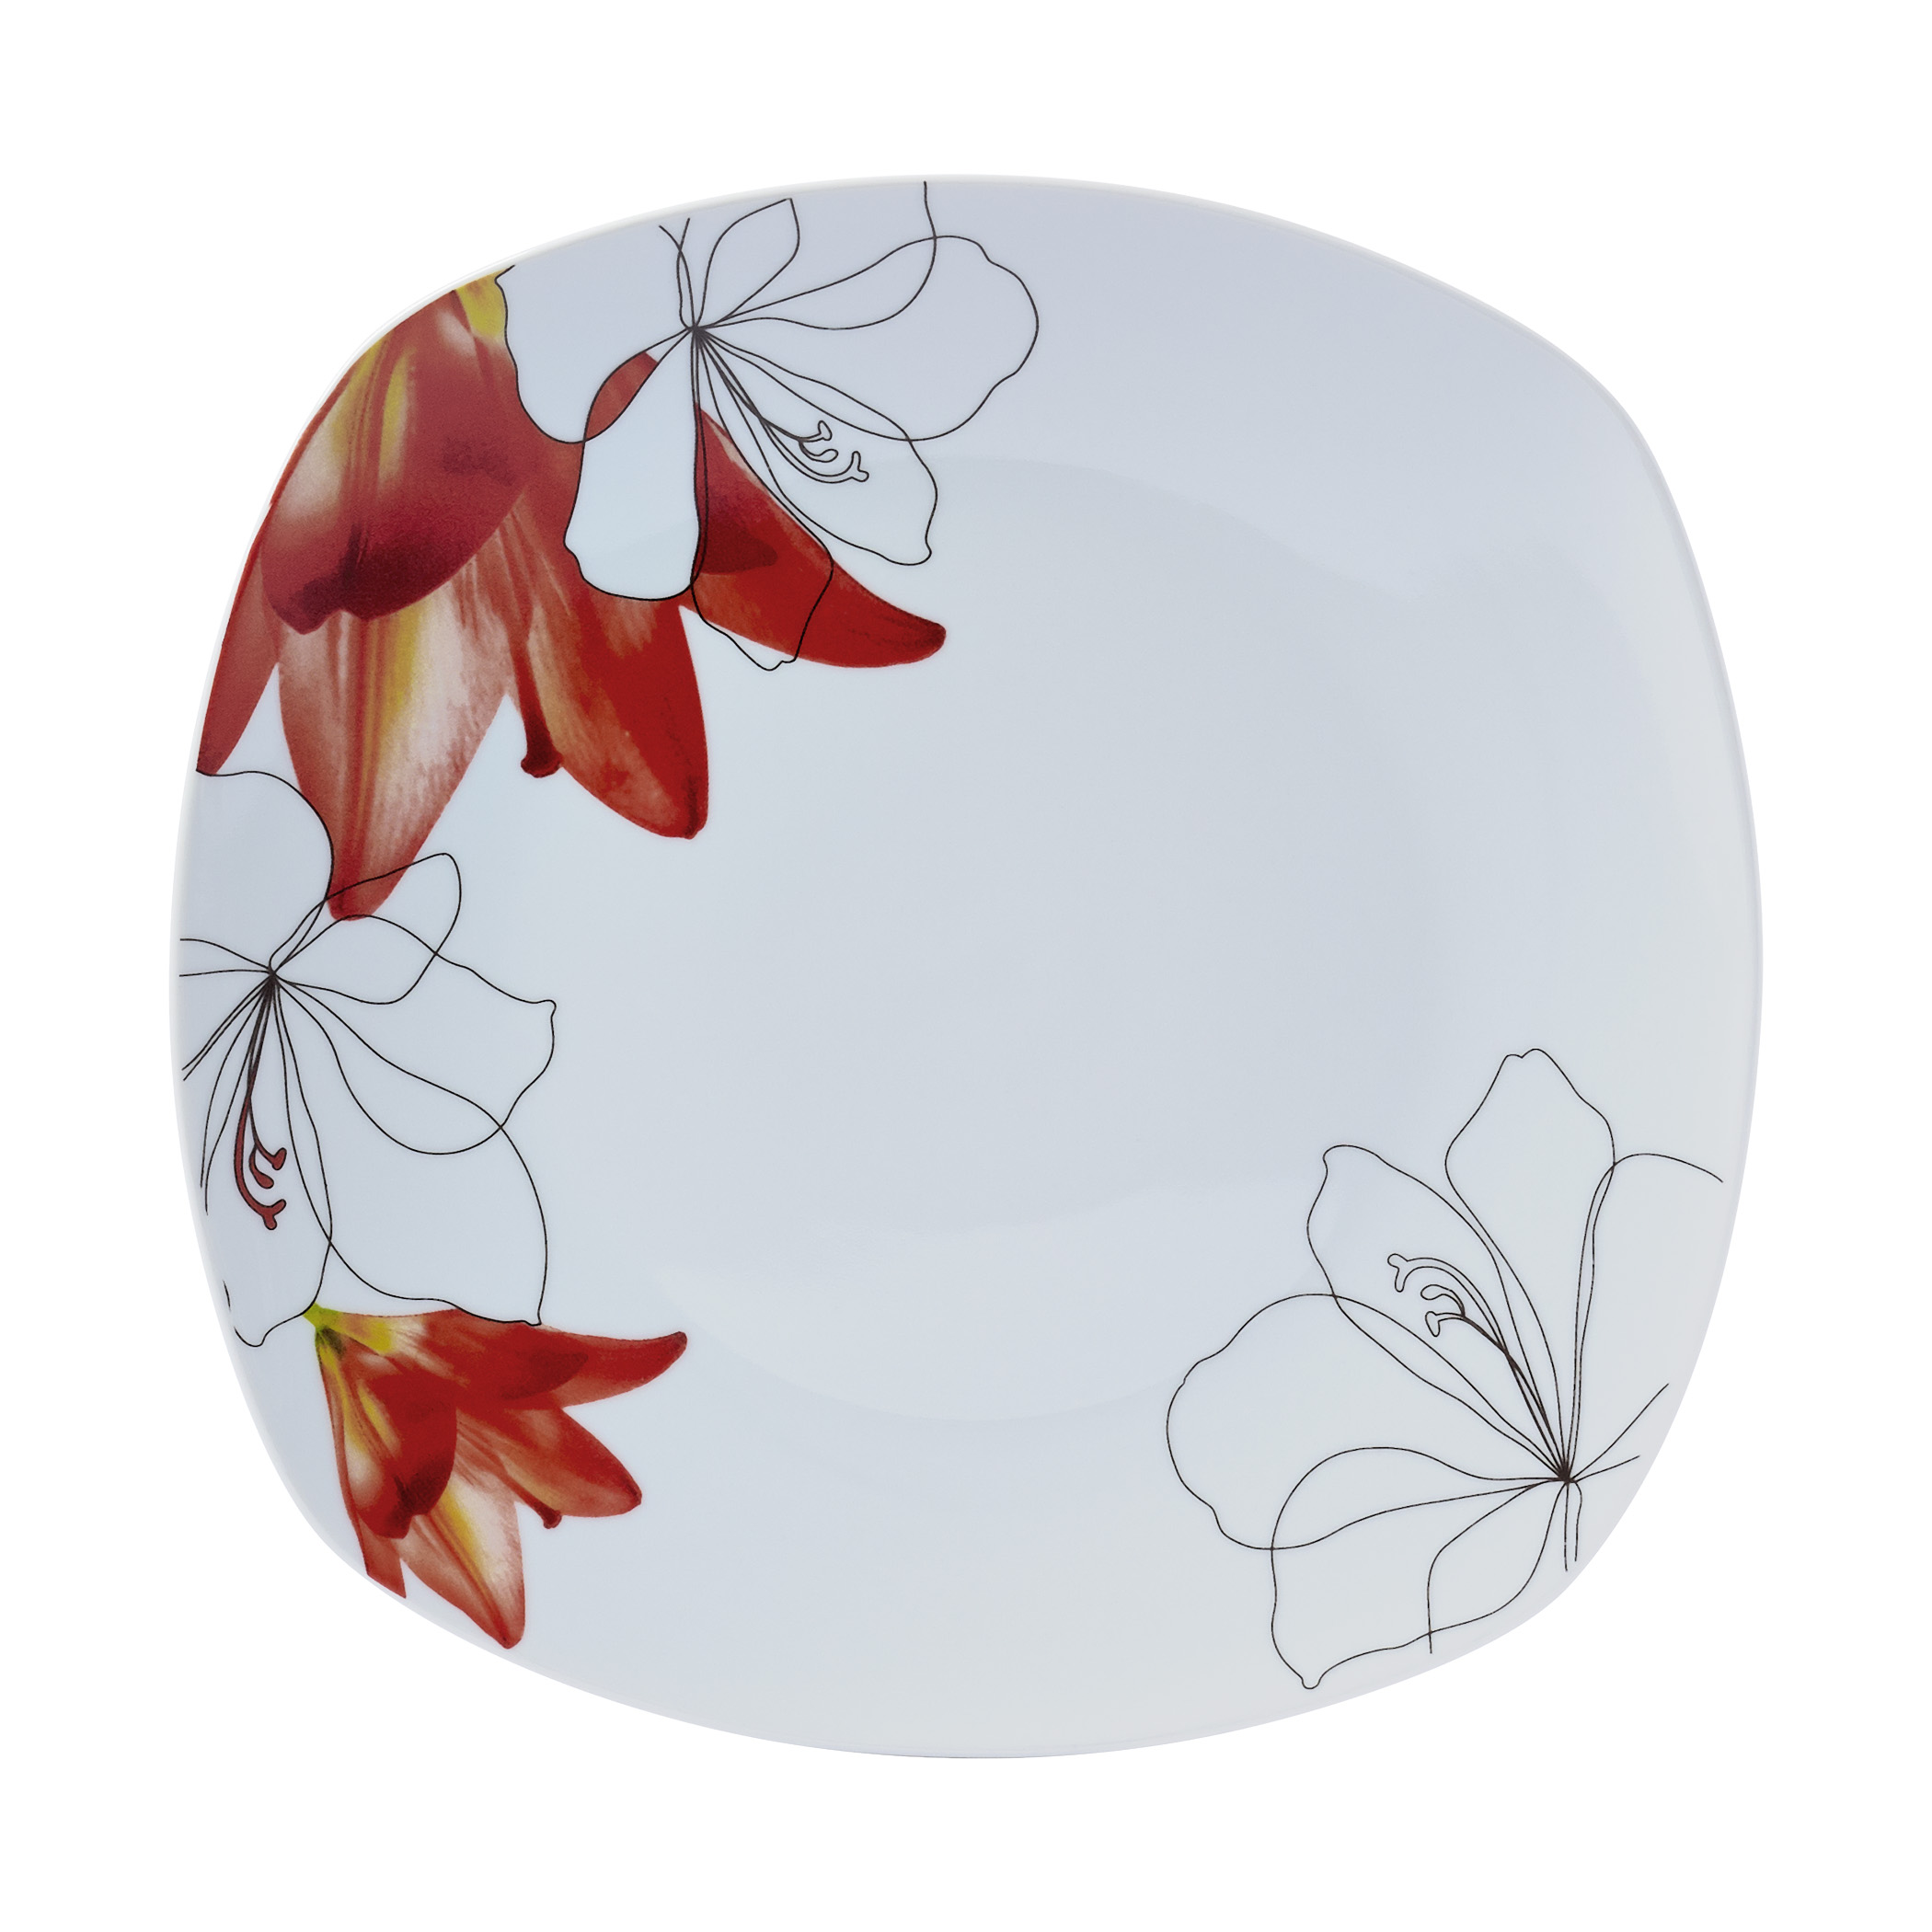 ... TTU-T4260-EC-16 Piece Porcelain Dinnerware Set by Tabletops Gallery_1 ...  sc 1 st  Tabletops Unlimited & 16 Piece Porcelain Dinnerware Set by Tabletops Gallery® | Tabletops ...